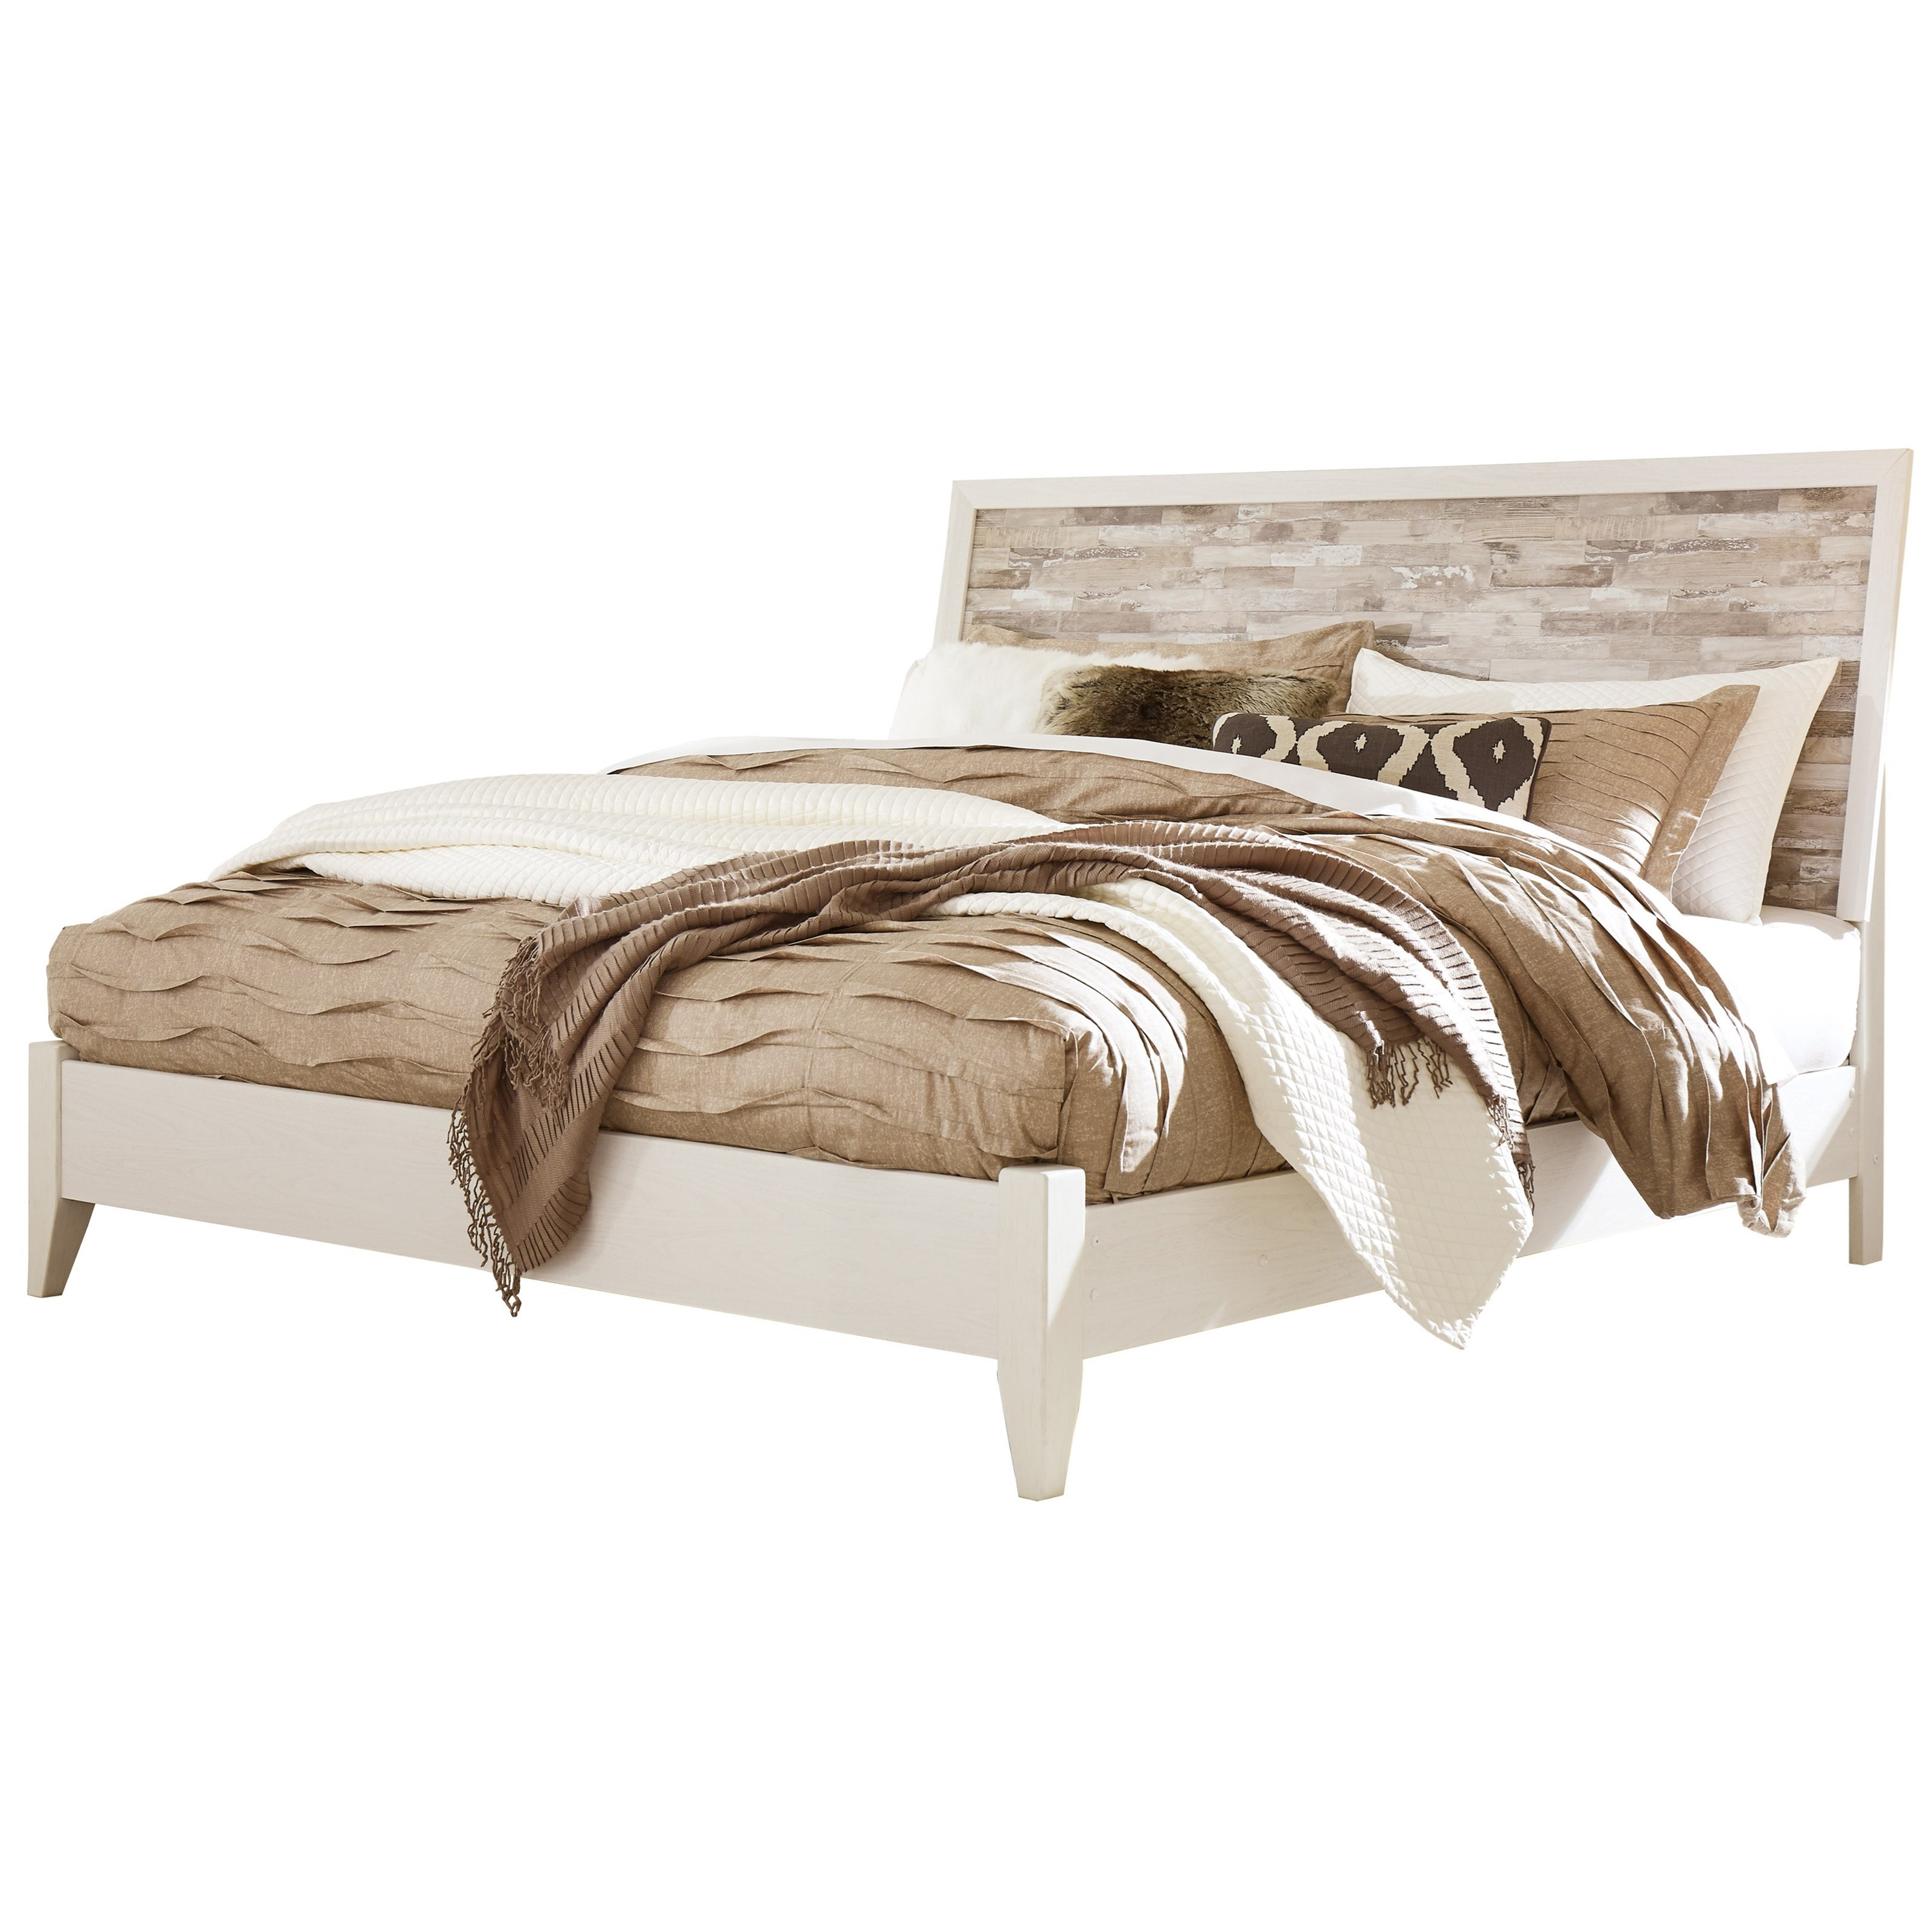 B705 58 Ck Ashley Furniture California King Sleigh Bed: Ashley (Signature Design) Evanni Rustic Gray/White King